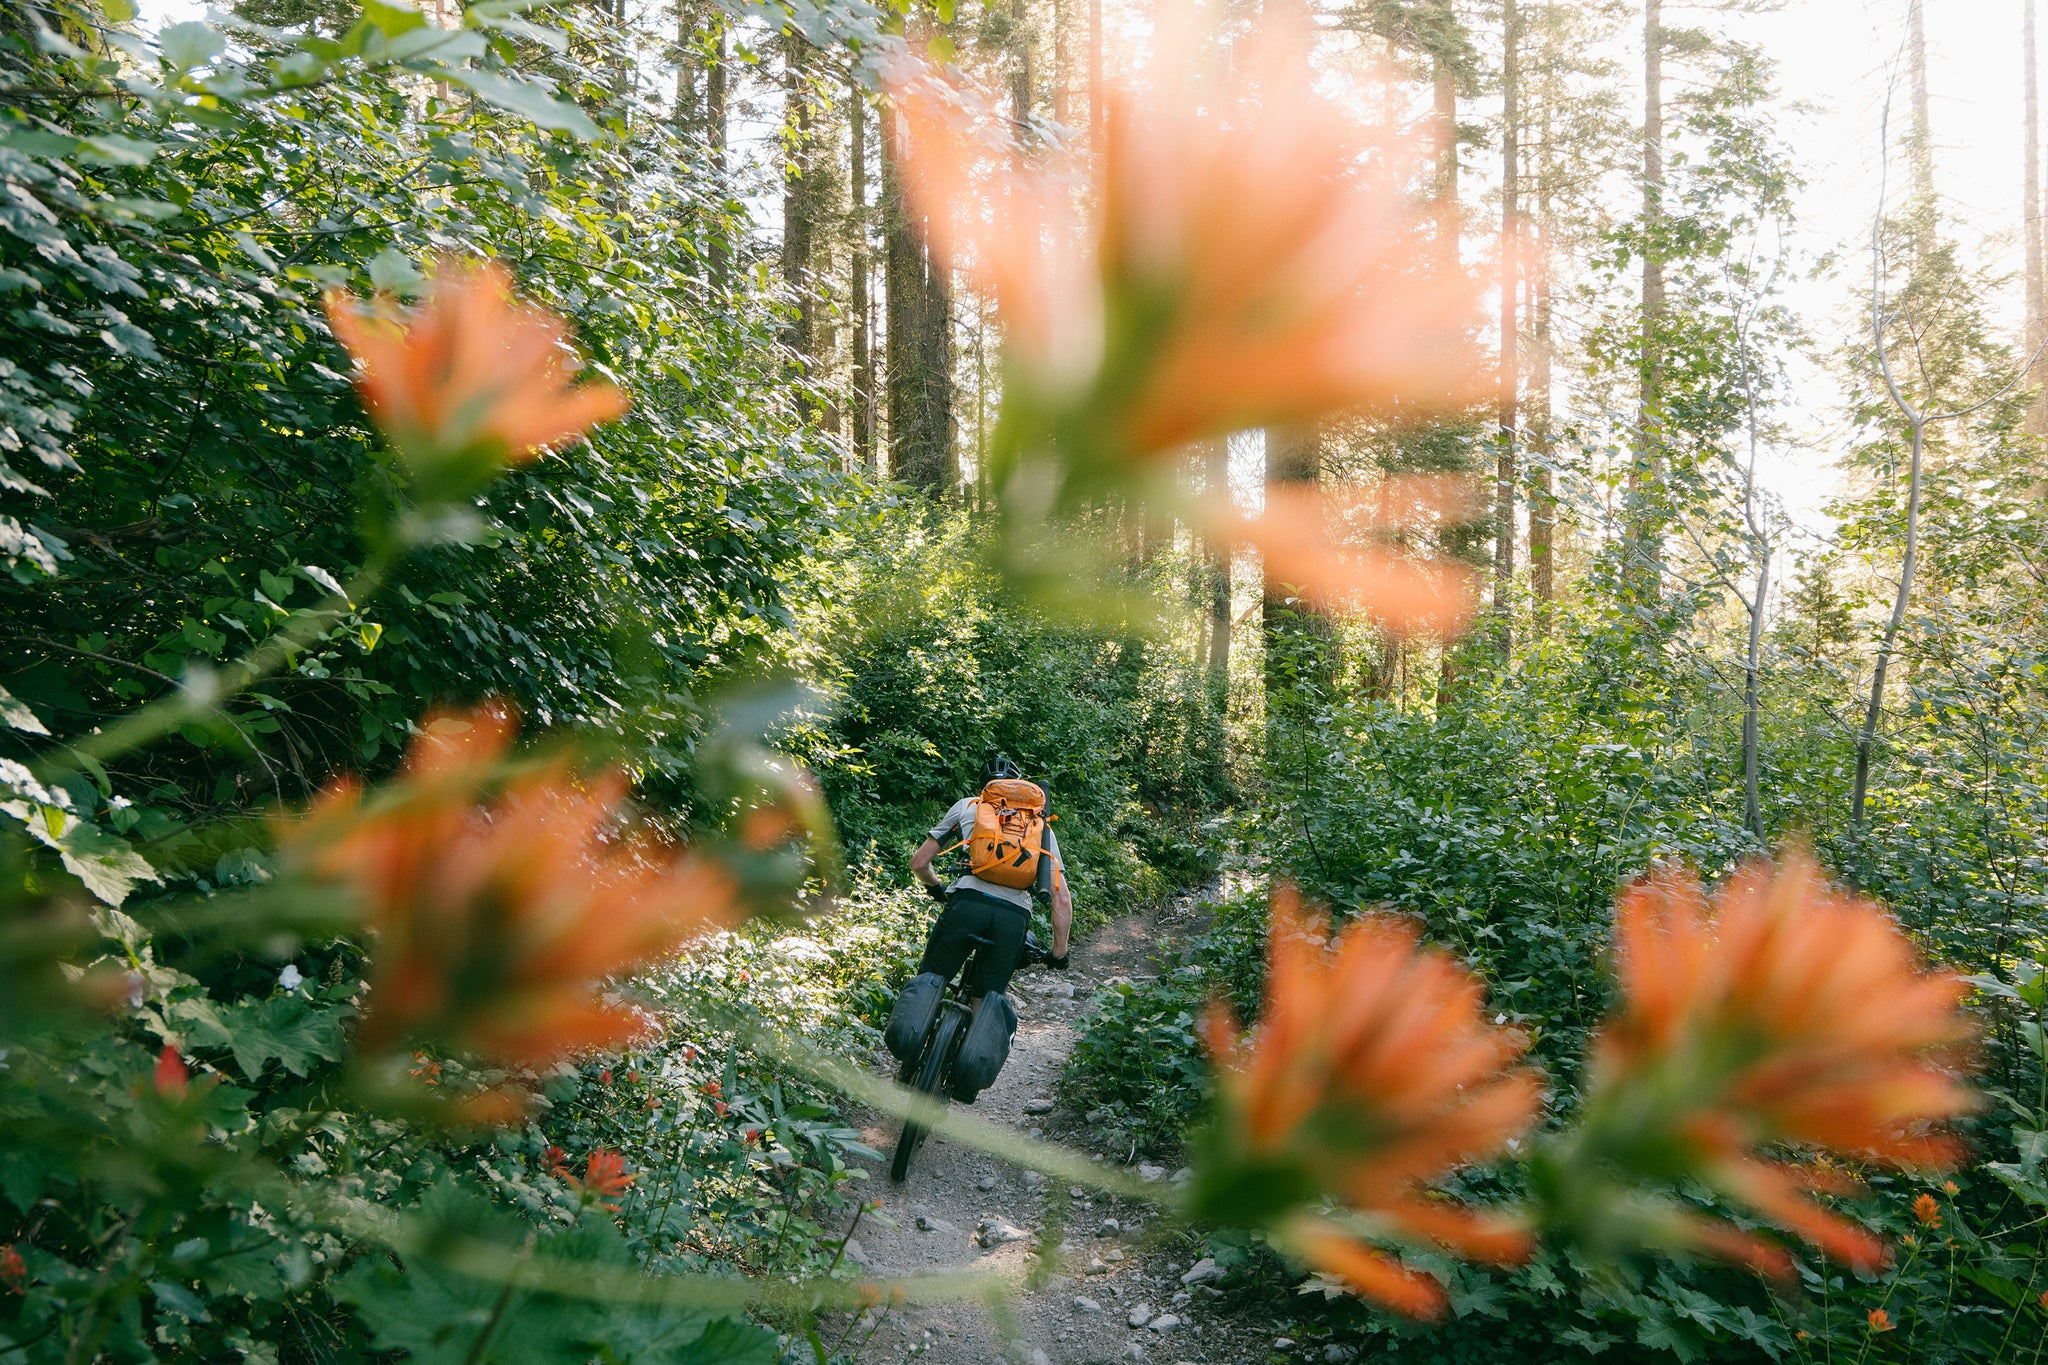 Mountain Biker with Castilleja Flowers in the Foreground